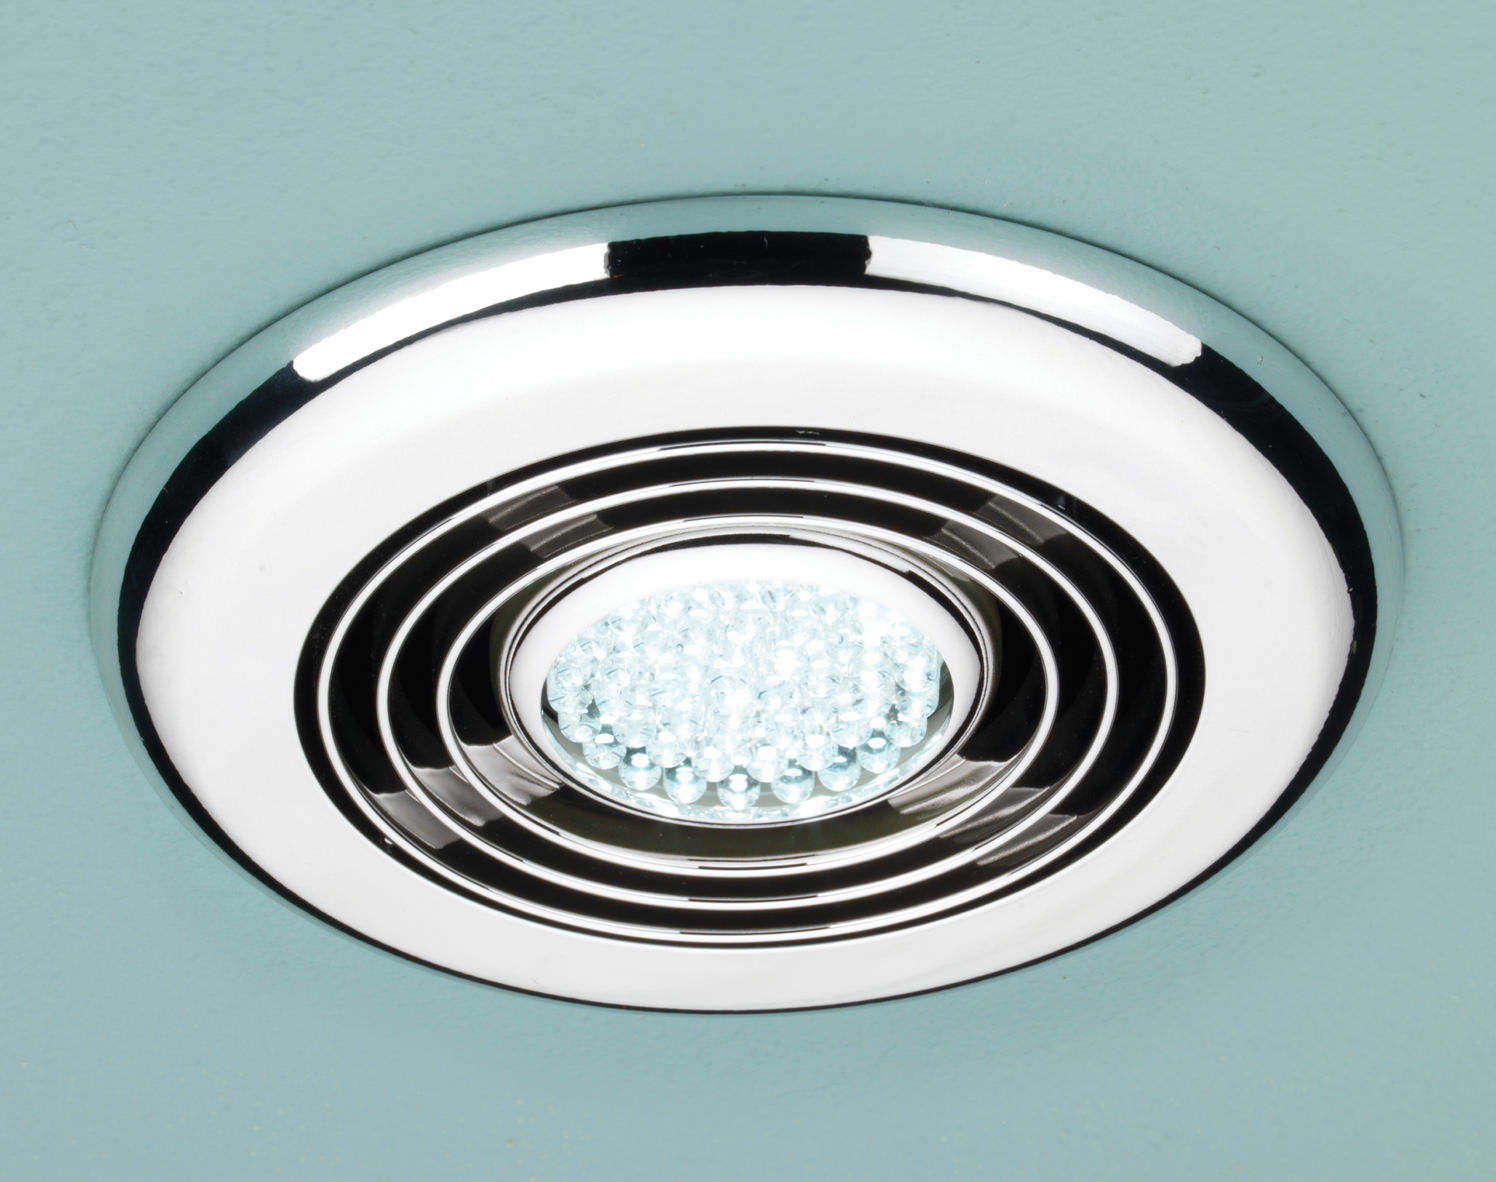 Beautiful Ventless Bathroom Fan With Light Construction